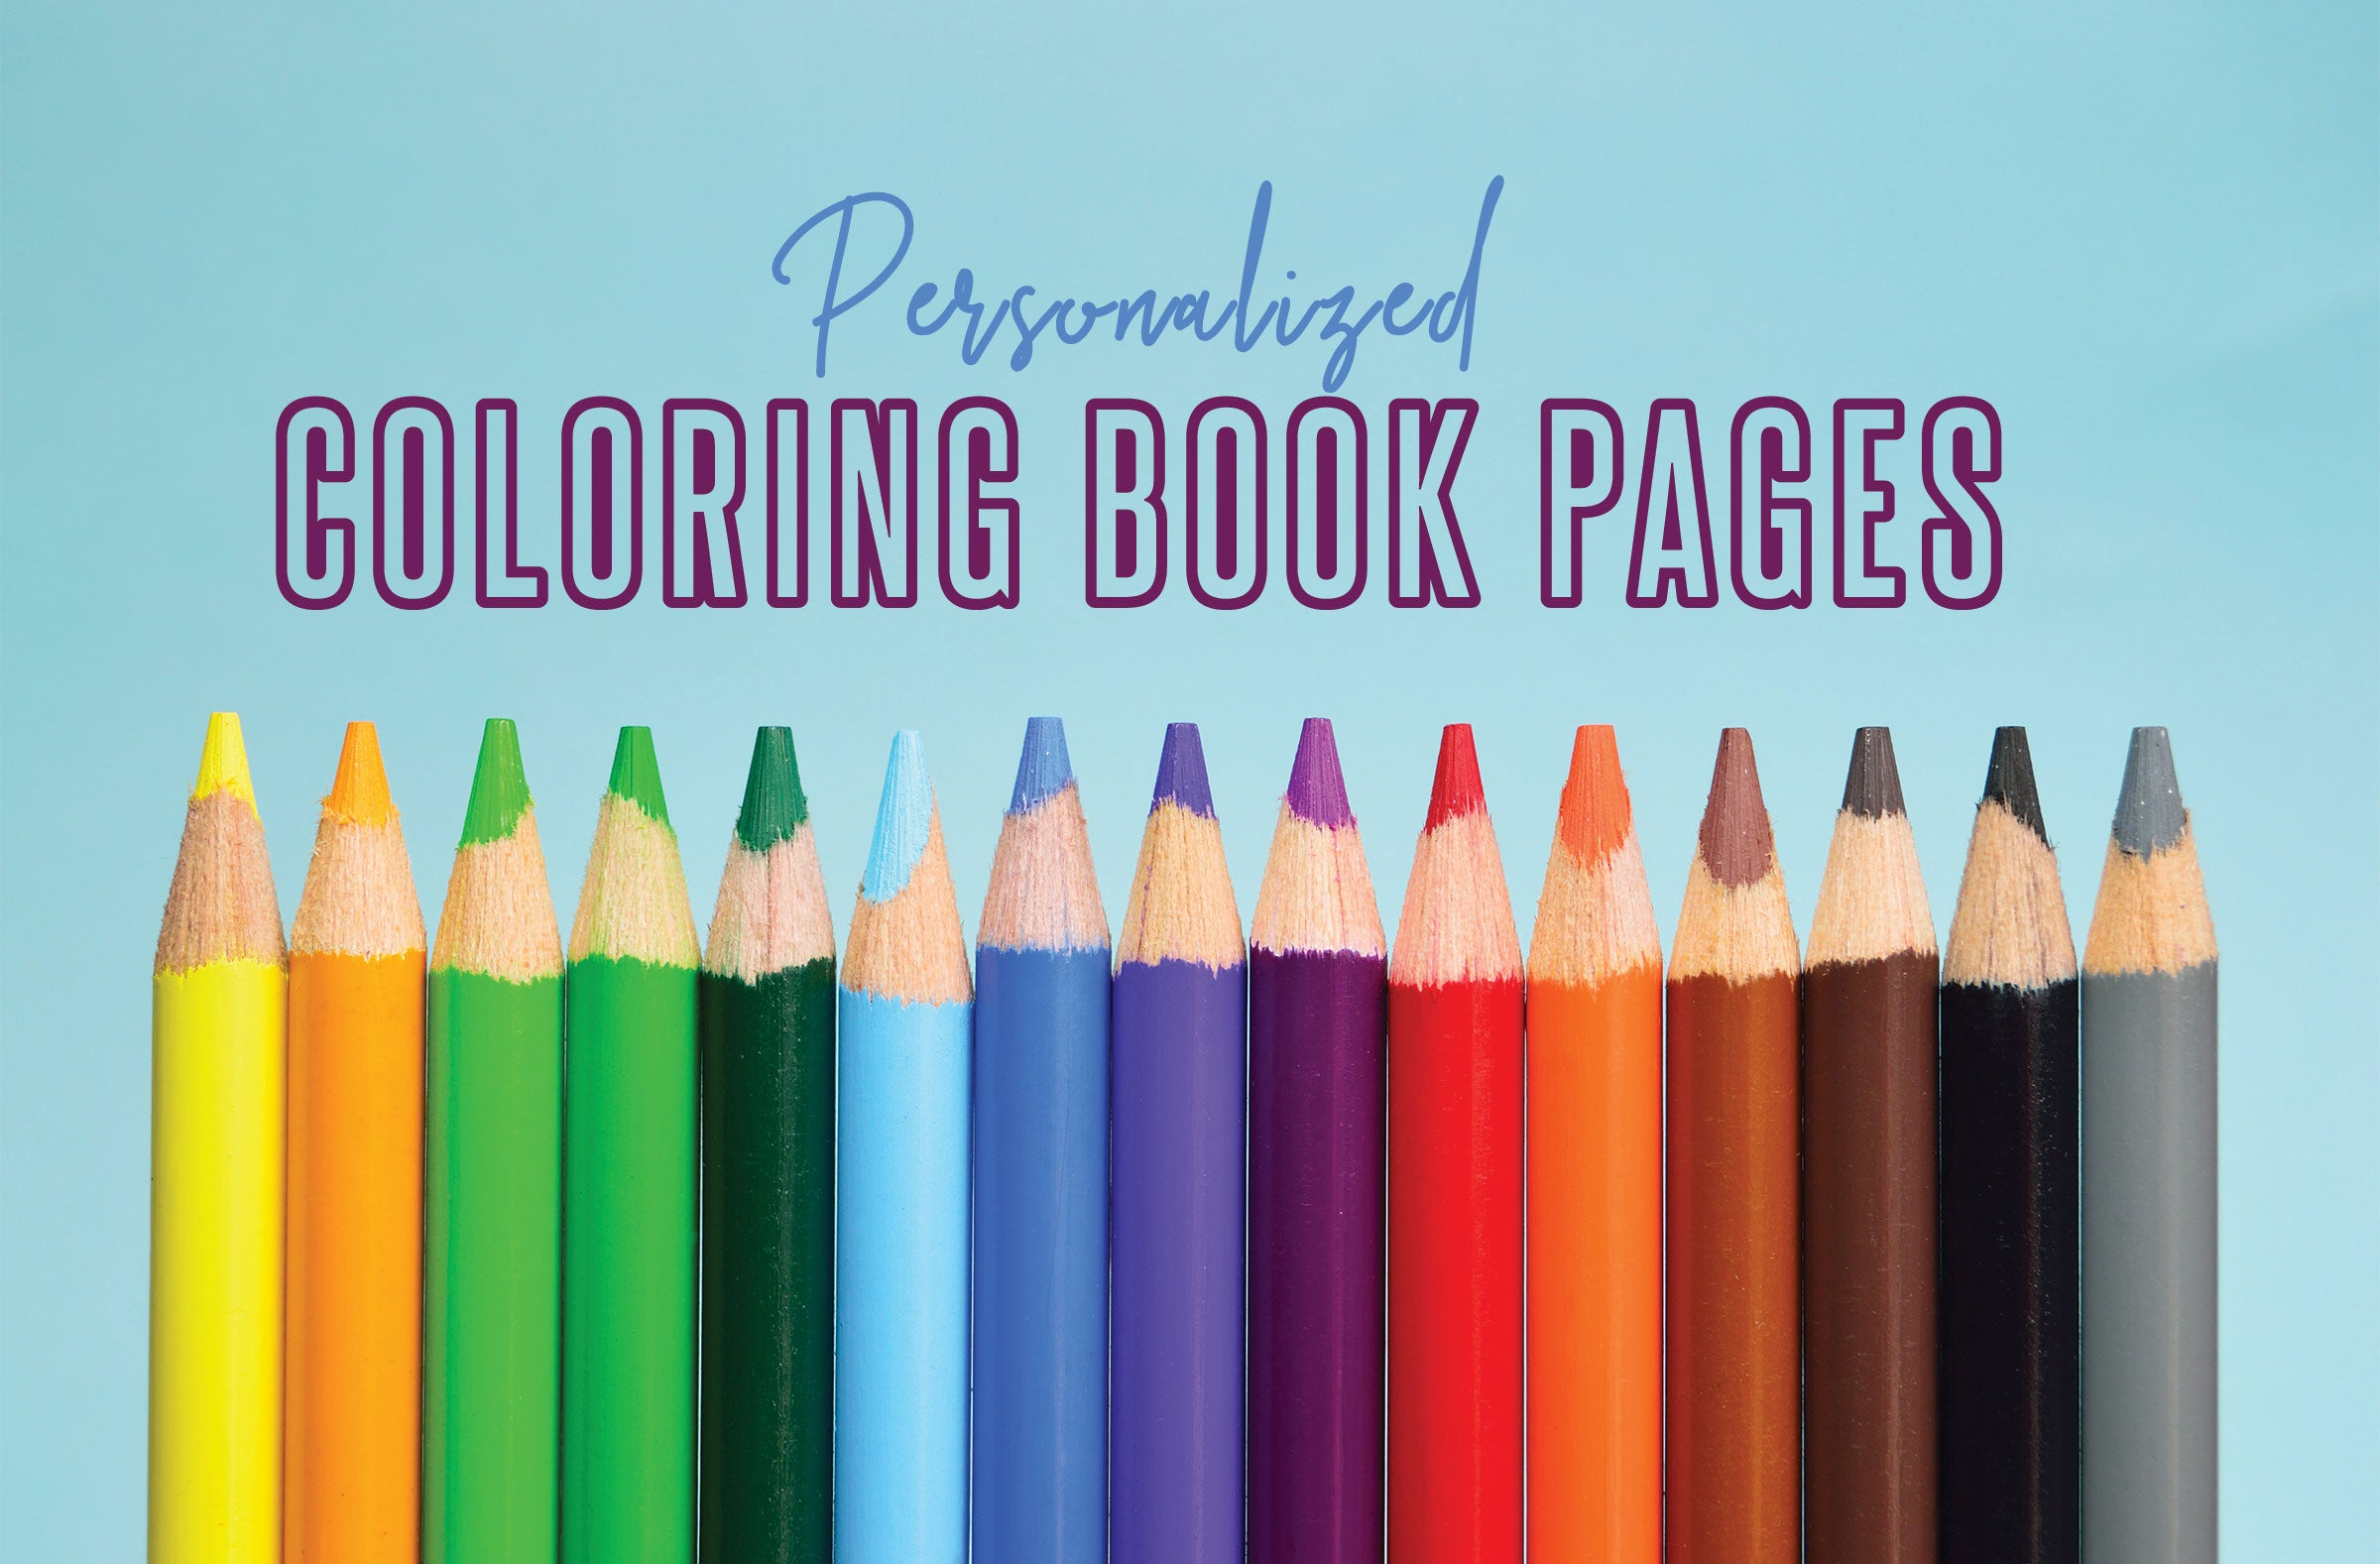 Personalized Coloring Book Pages